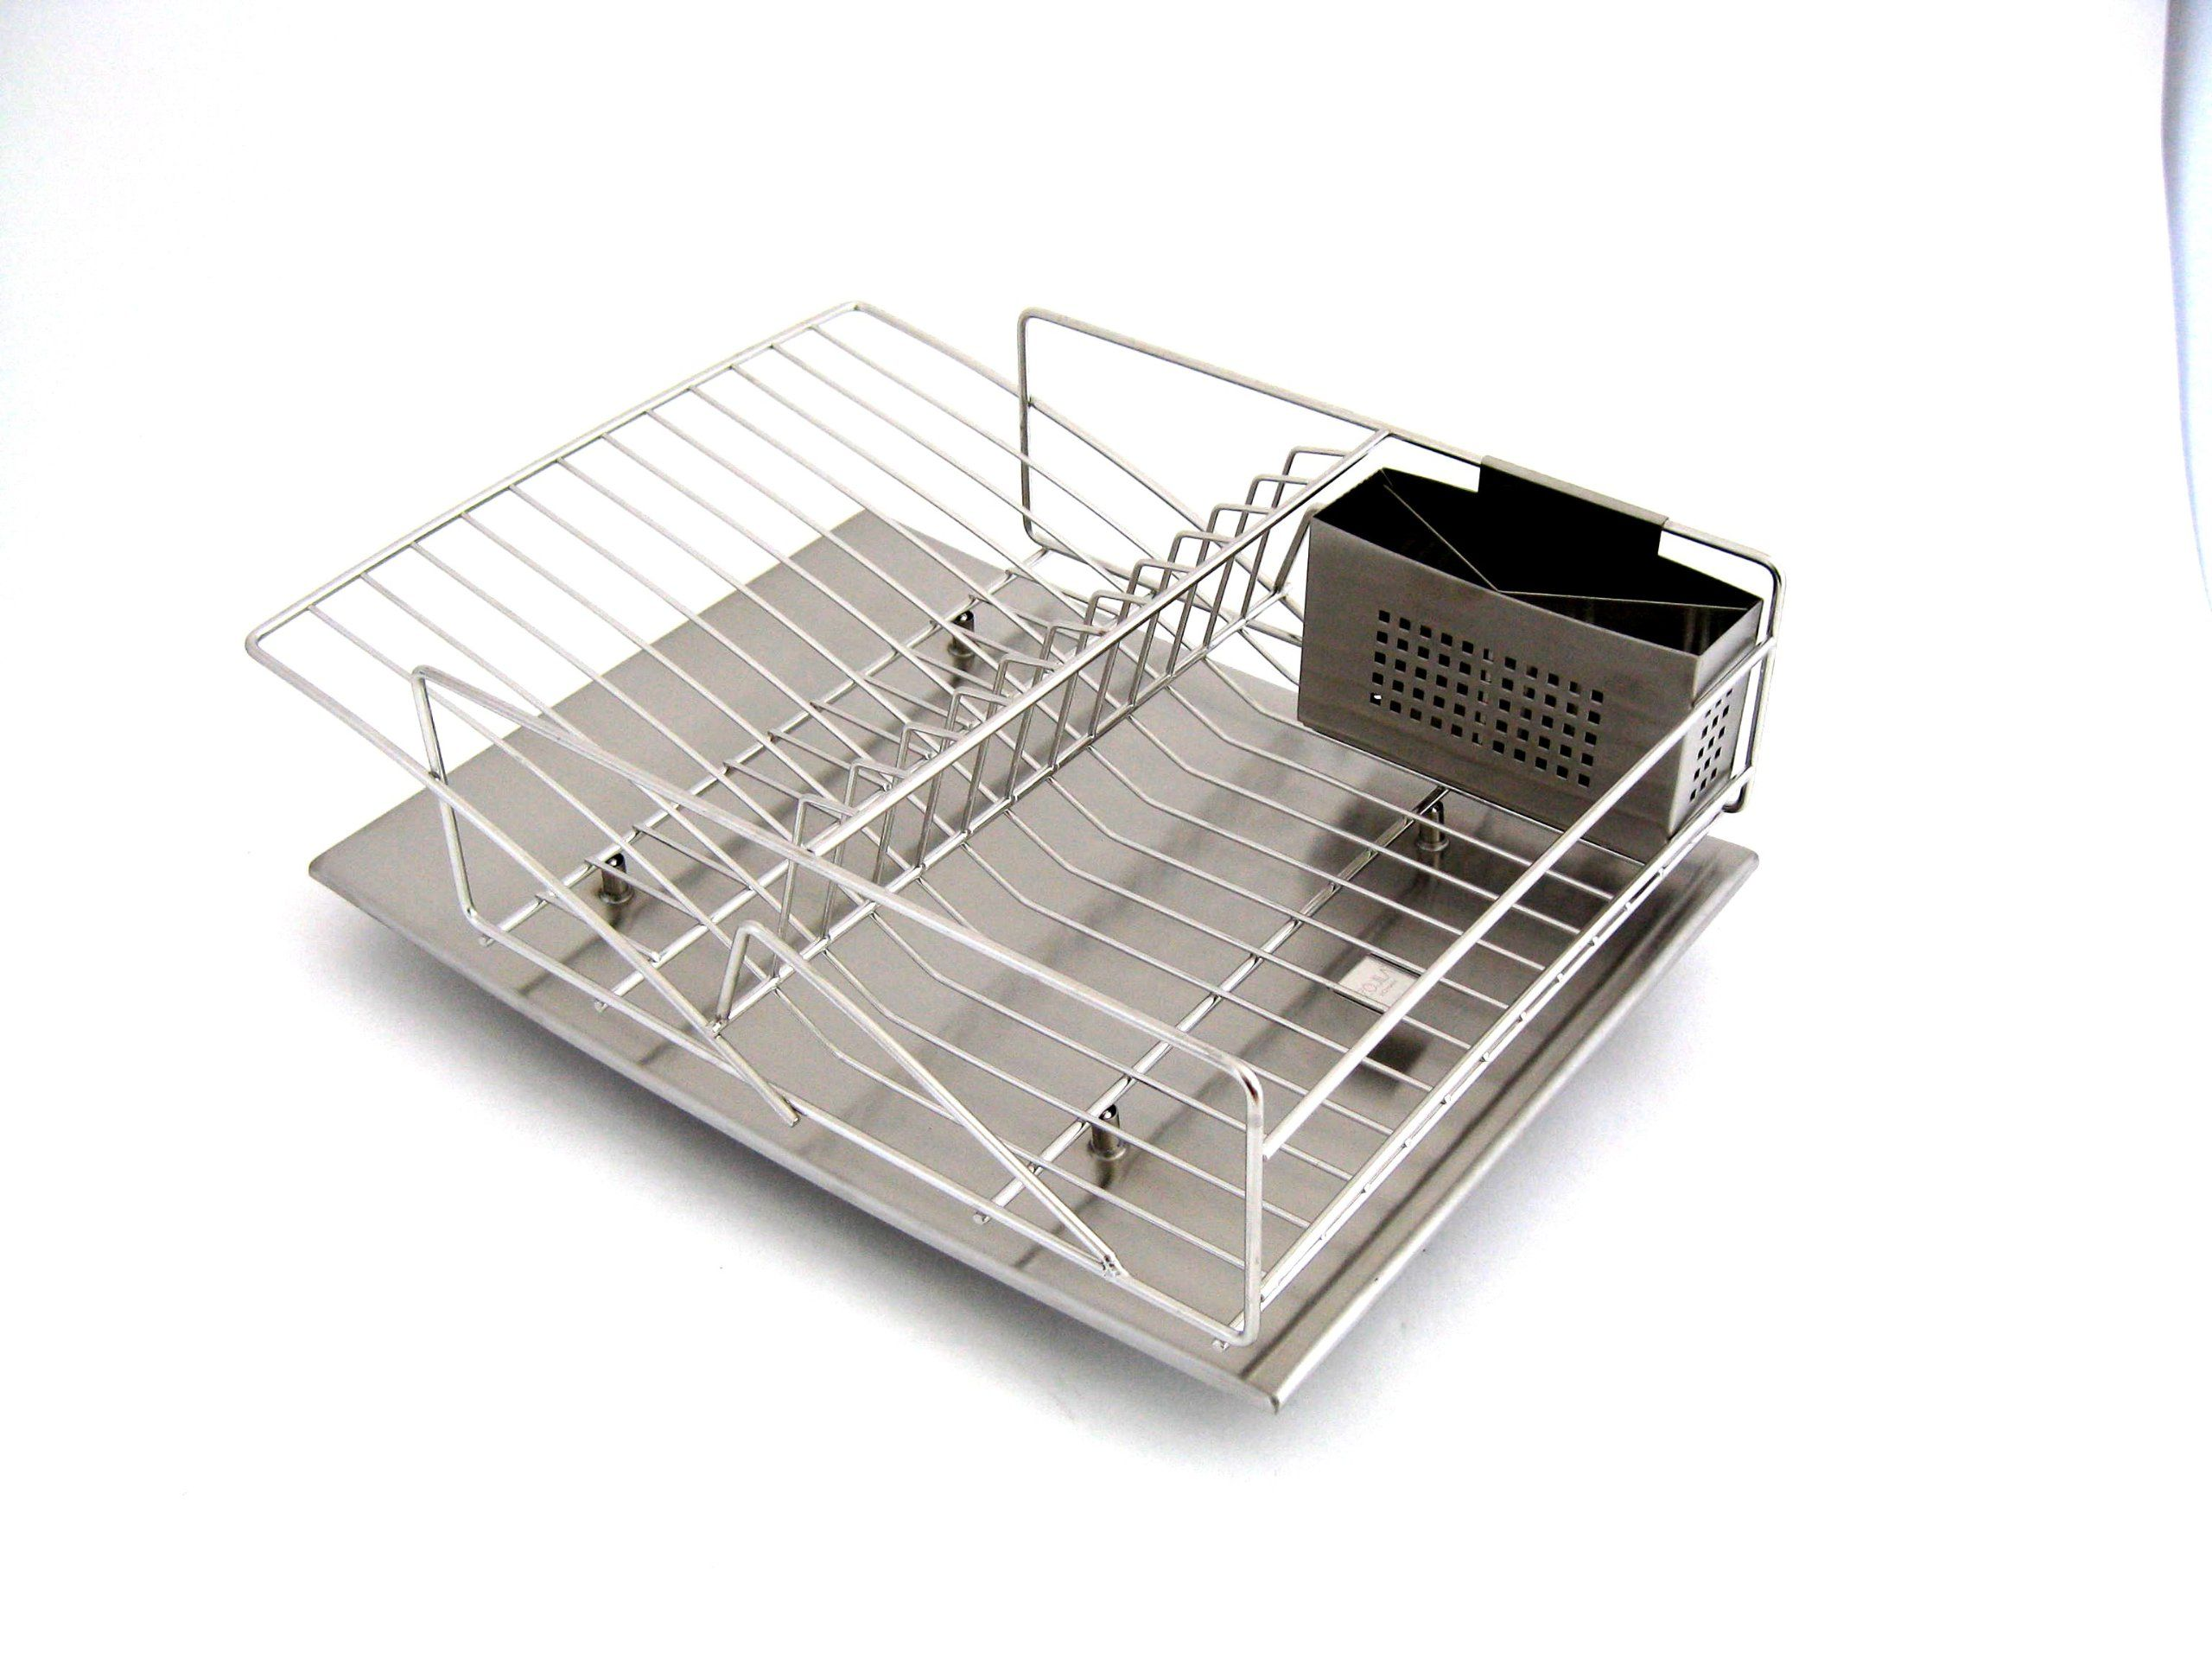 Sabatier Dish Rack Classy Amazon  Zojila Rohan All Stainless Steel Dish Rack Drain Board Design Ideas